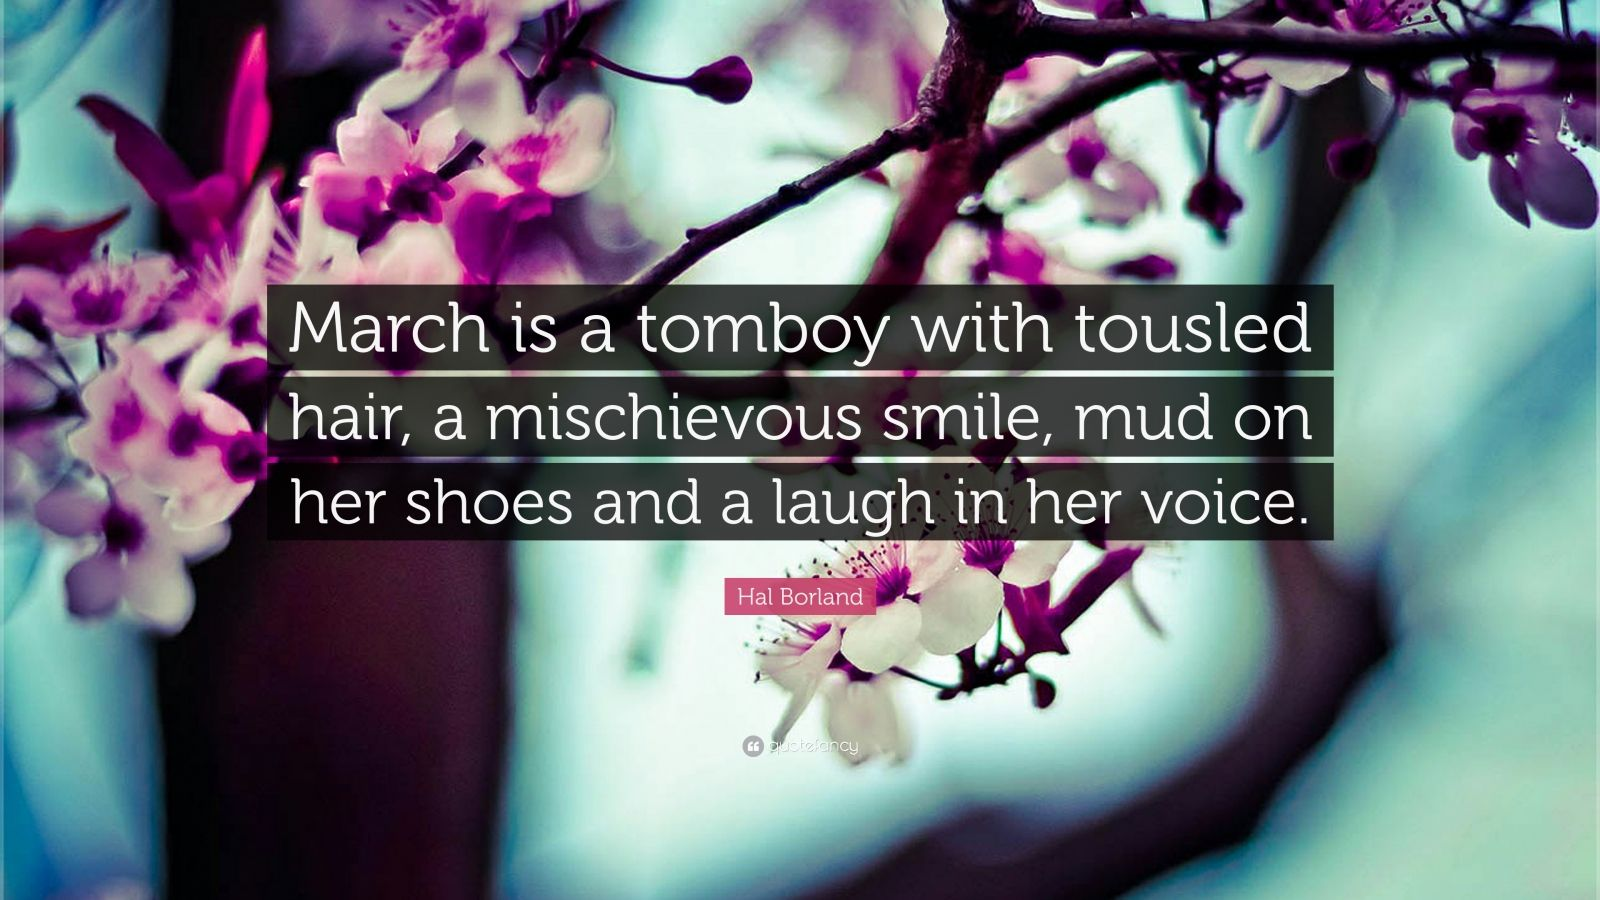 """Hal Borland Quote: """"March is a tomboy with tousled hair, a mischievous smile, mud on her shoes and a laugh in her voice."""""""